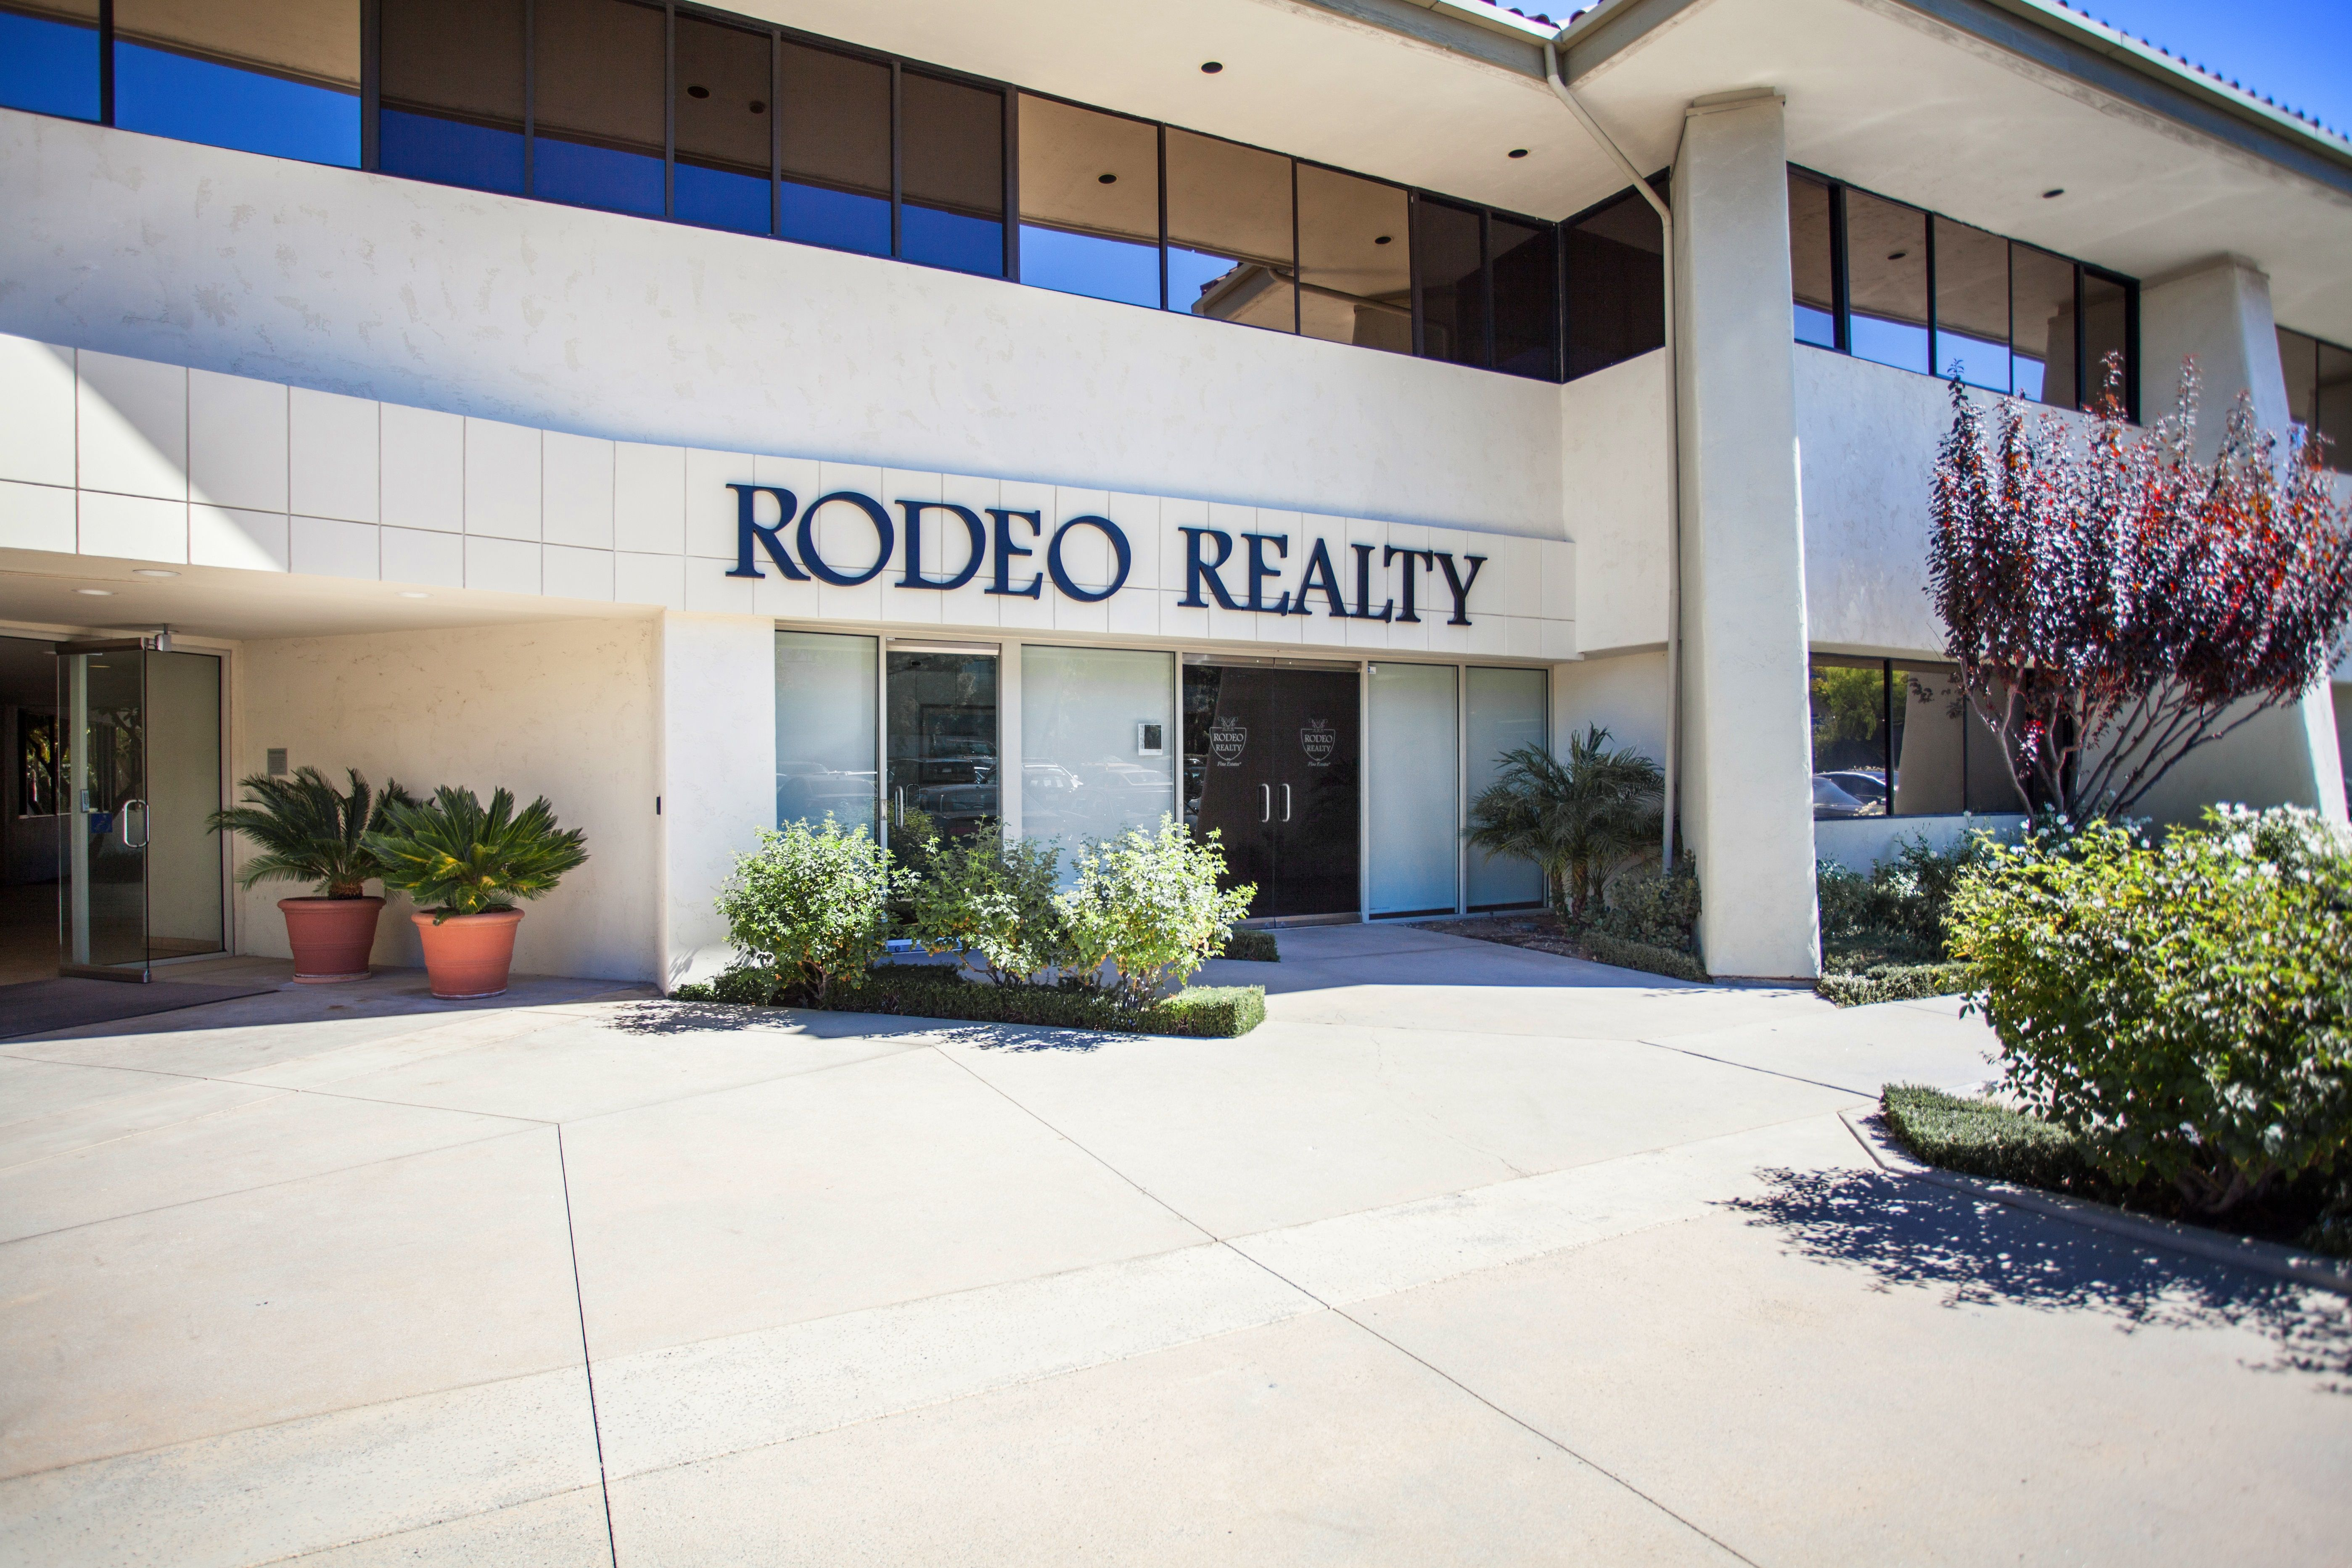 Rodeo Realty Brentwood Office Manager Simon